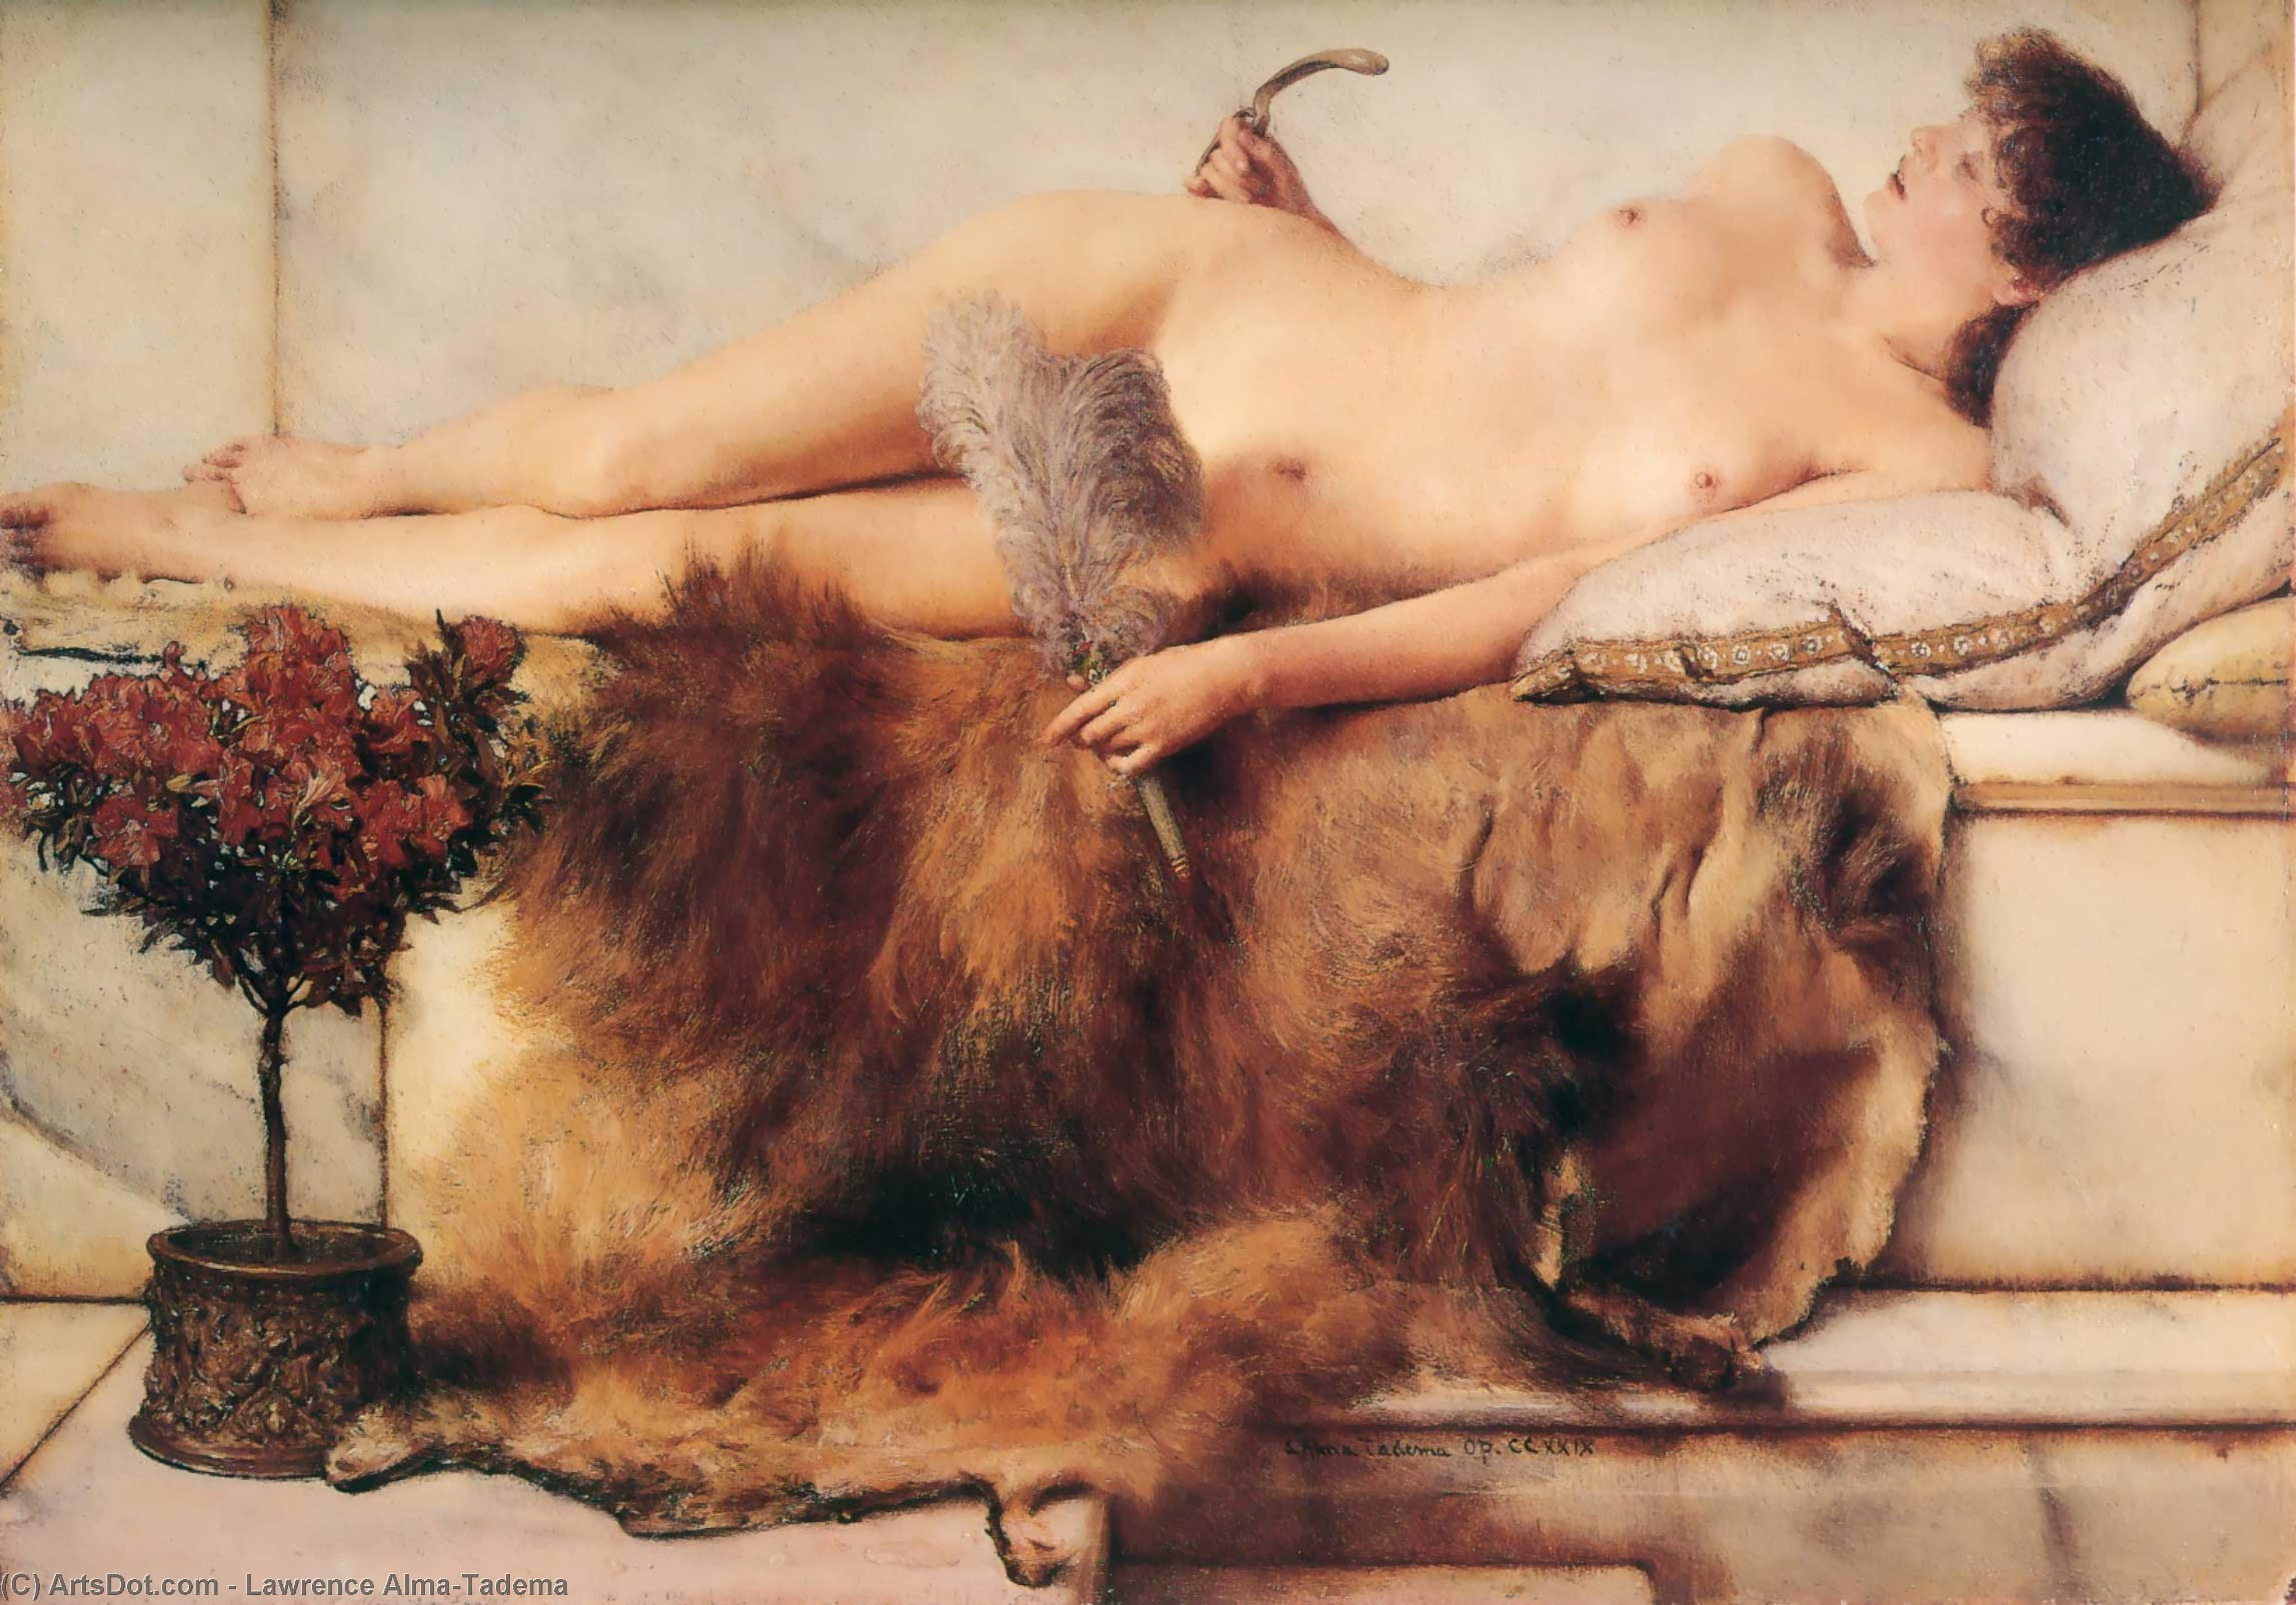 Wikioo.org - The Encyclopedia of Fine Arts - Painting, Artwork by Lawrence Alma-Tadema - In the Tepidarium